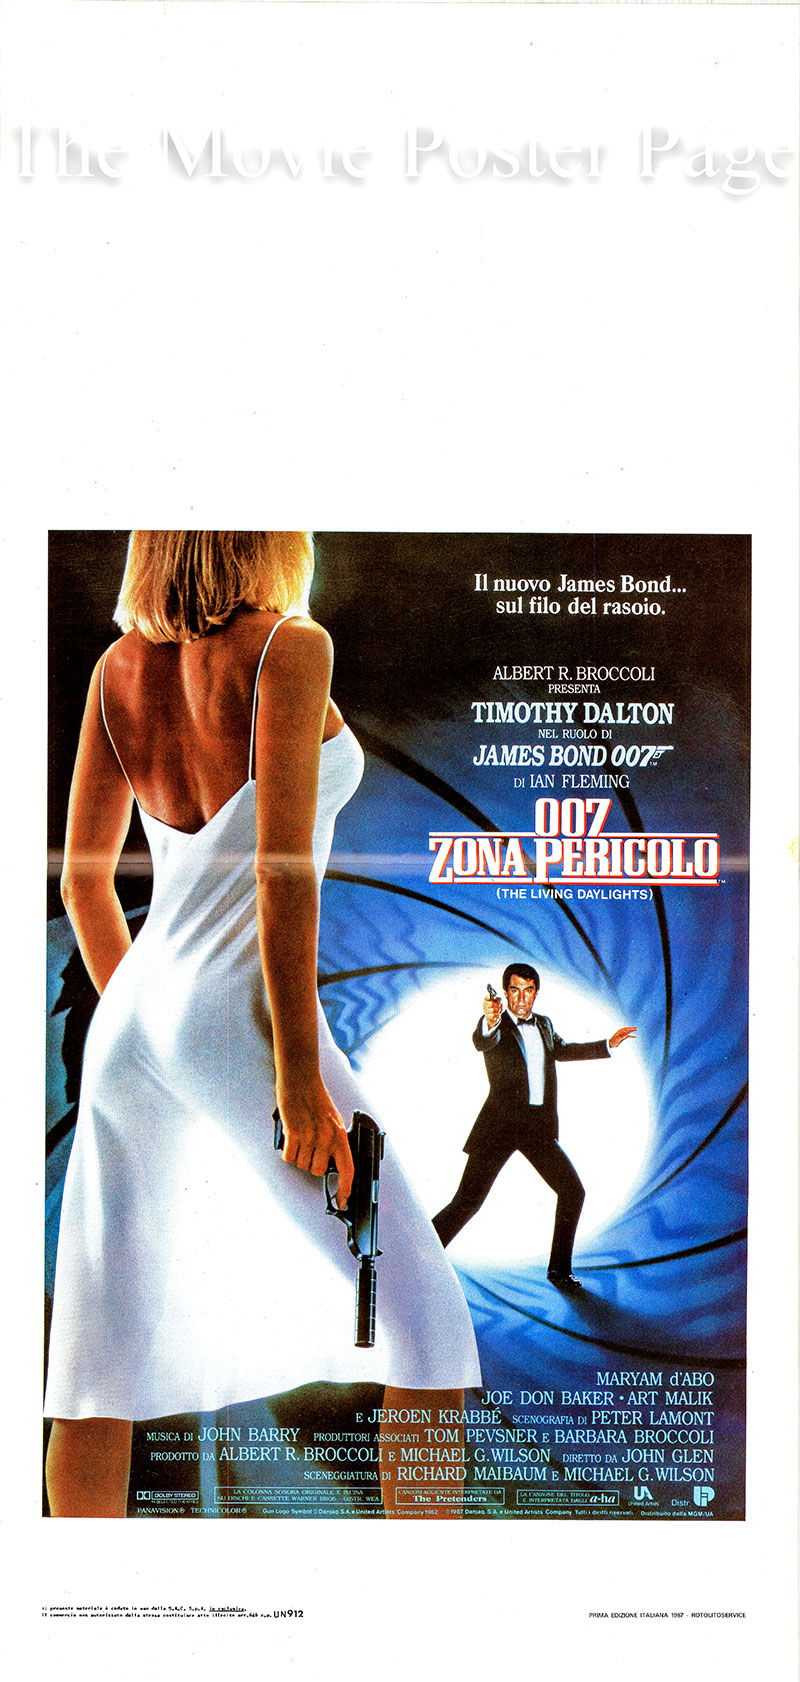 Pictured is an Italian locandina poster for the 1987 John Glen film The Living Daylights starring Timothy Dalton as James Bond.